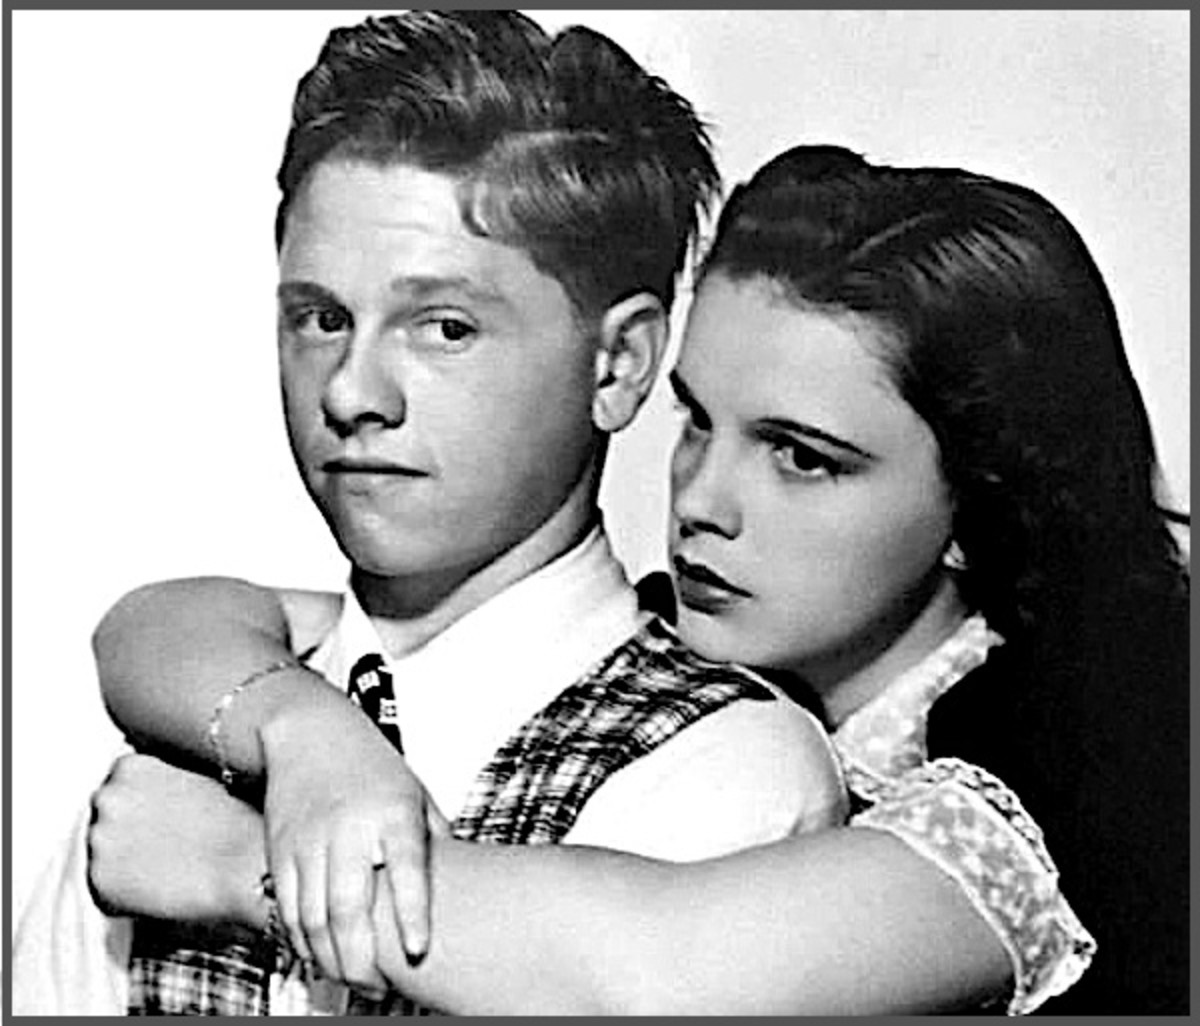 Judy Garland and Mickey Rooney teamed up for a number of memorable movies, typically playing boyfriend and girlfriend.